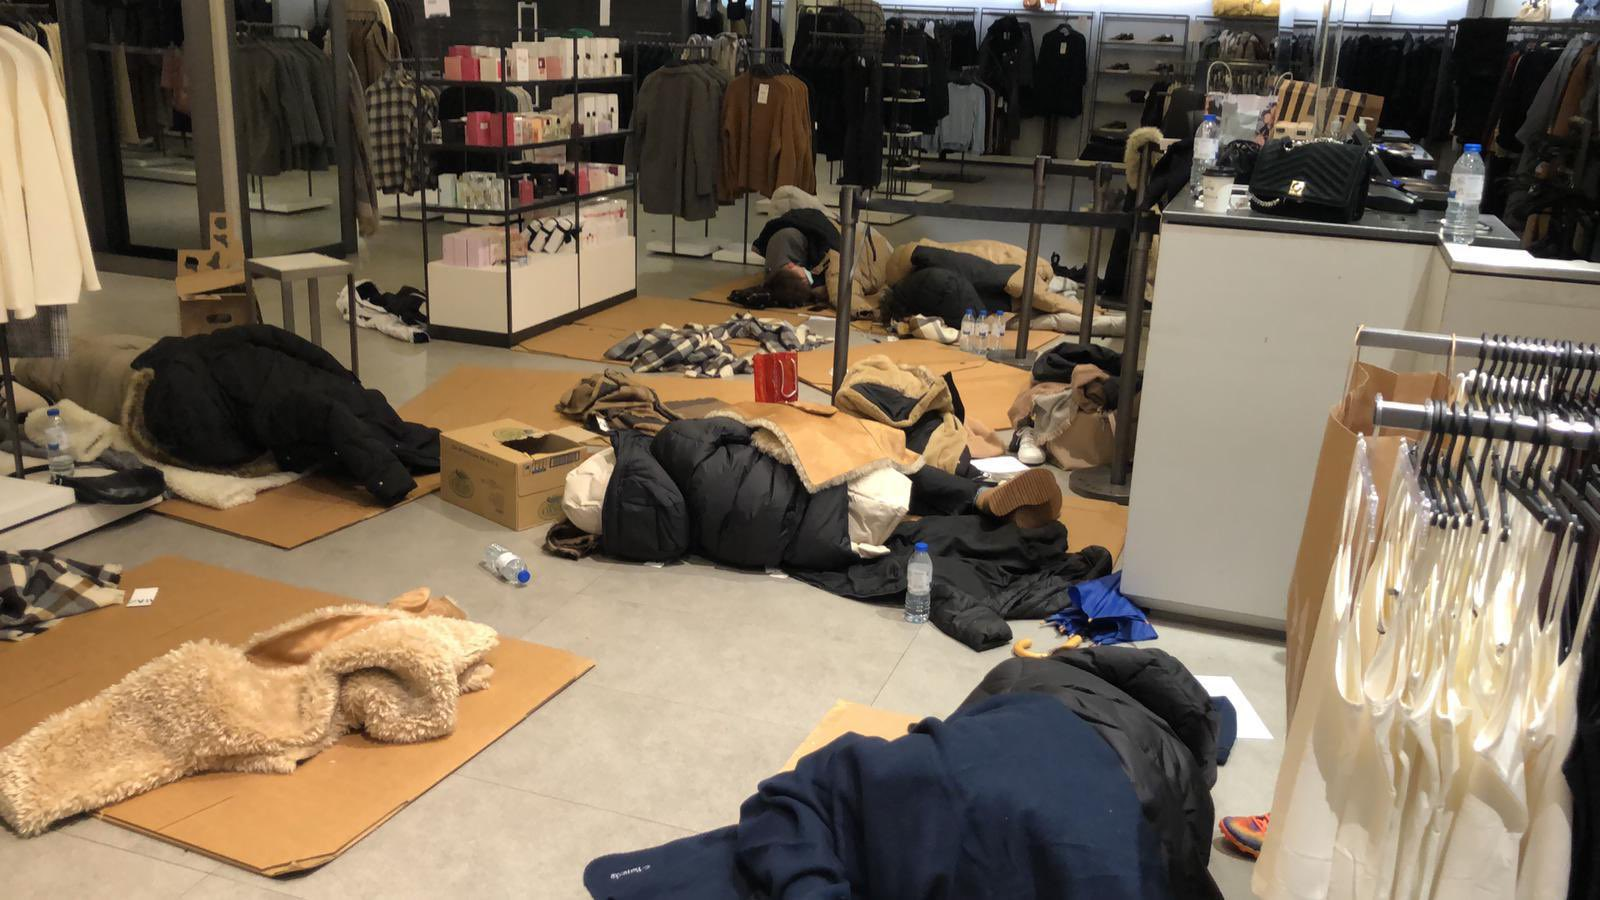 Photographs of employees at the Zara store sleeping on cardboard have been shared on the social network Twitter.